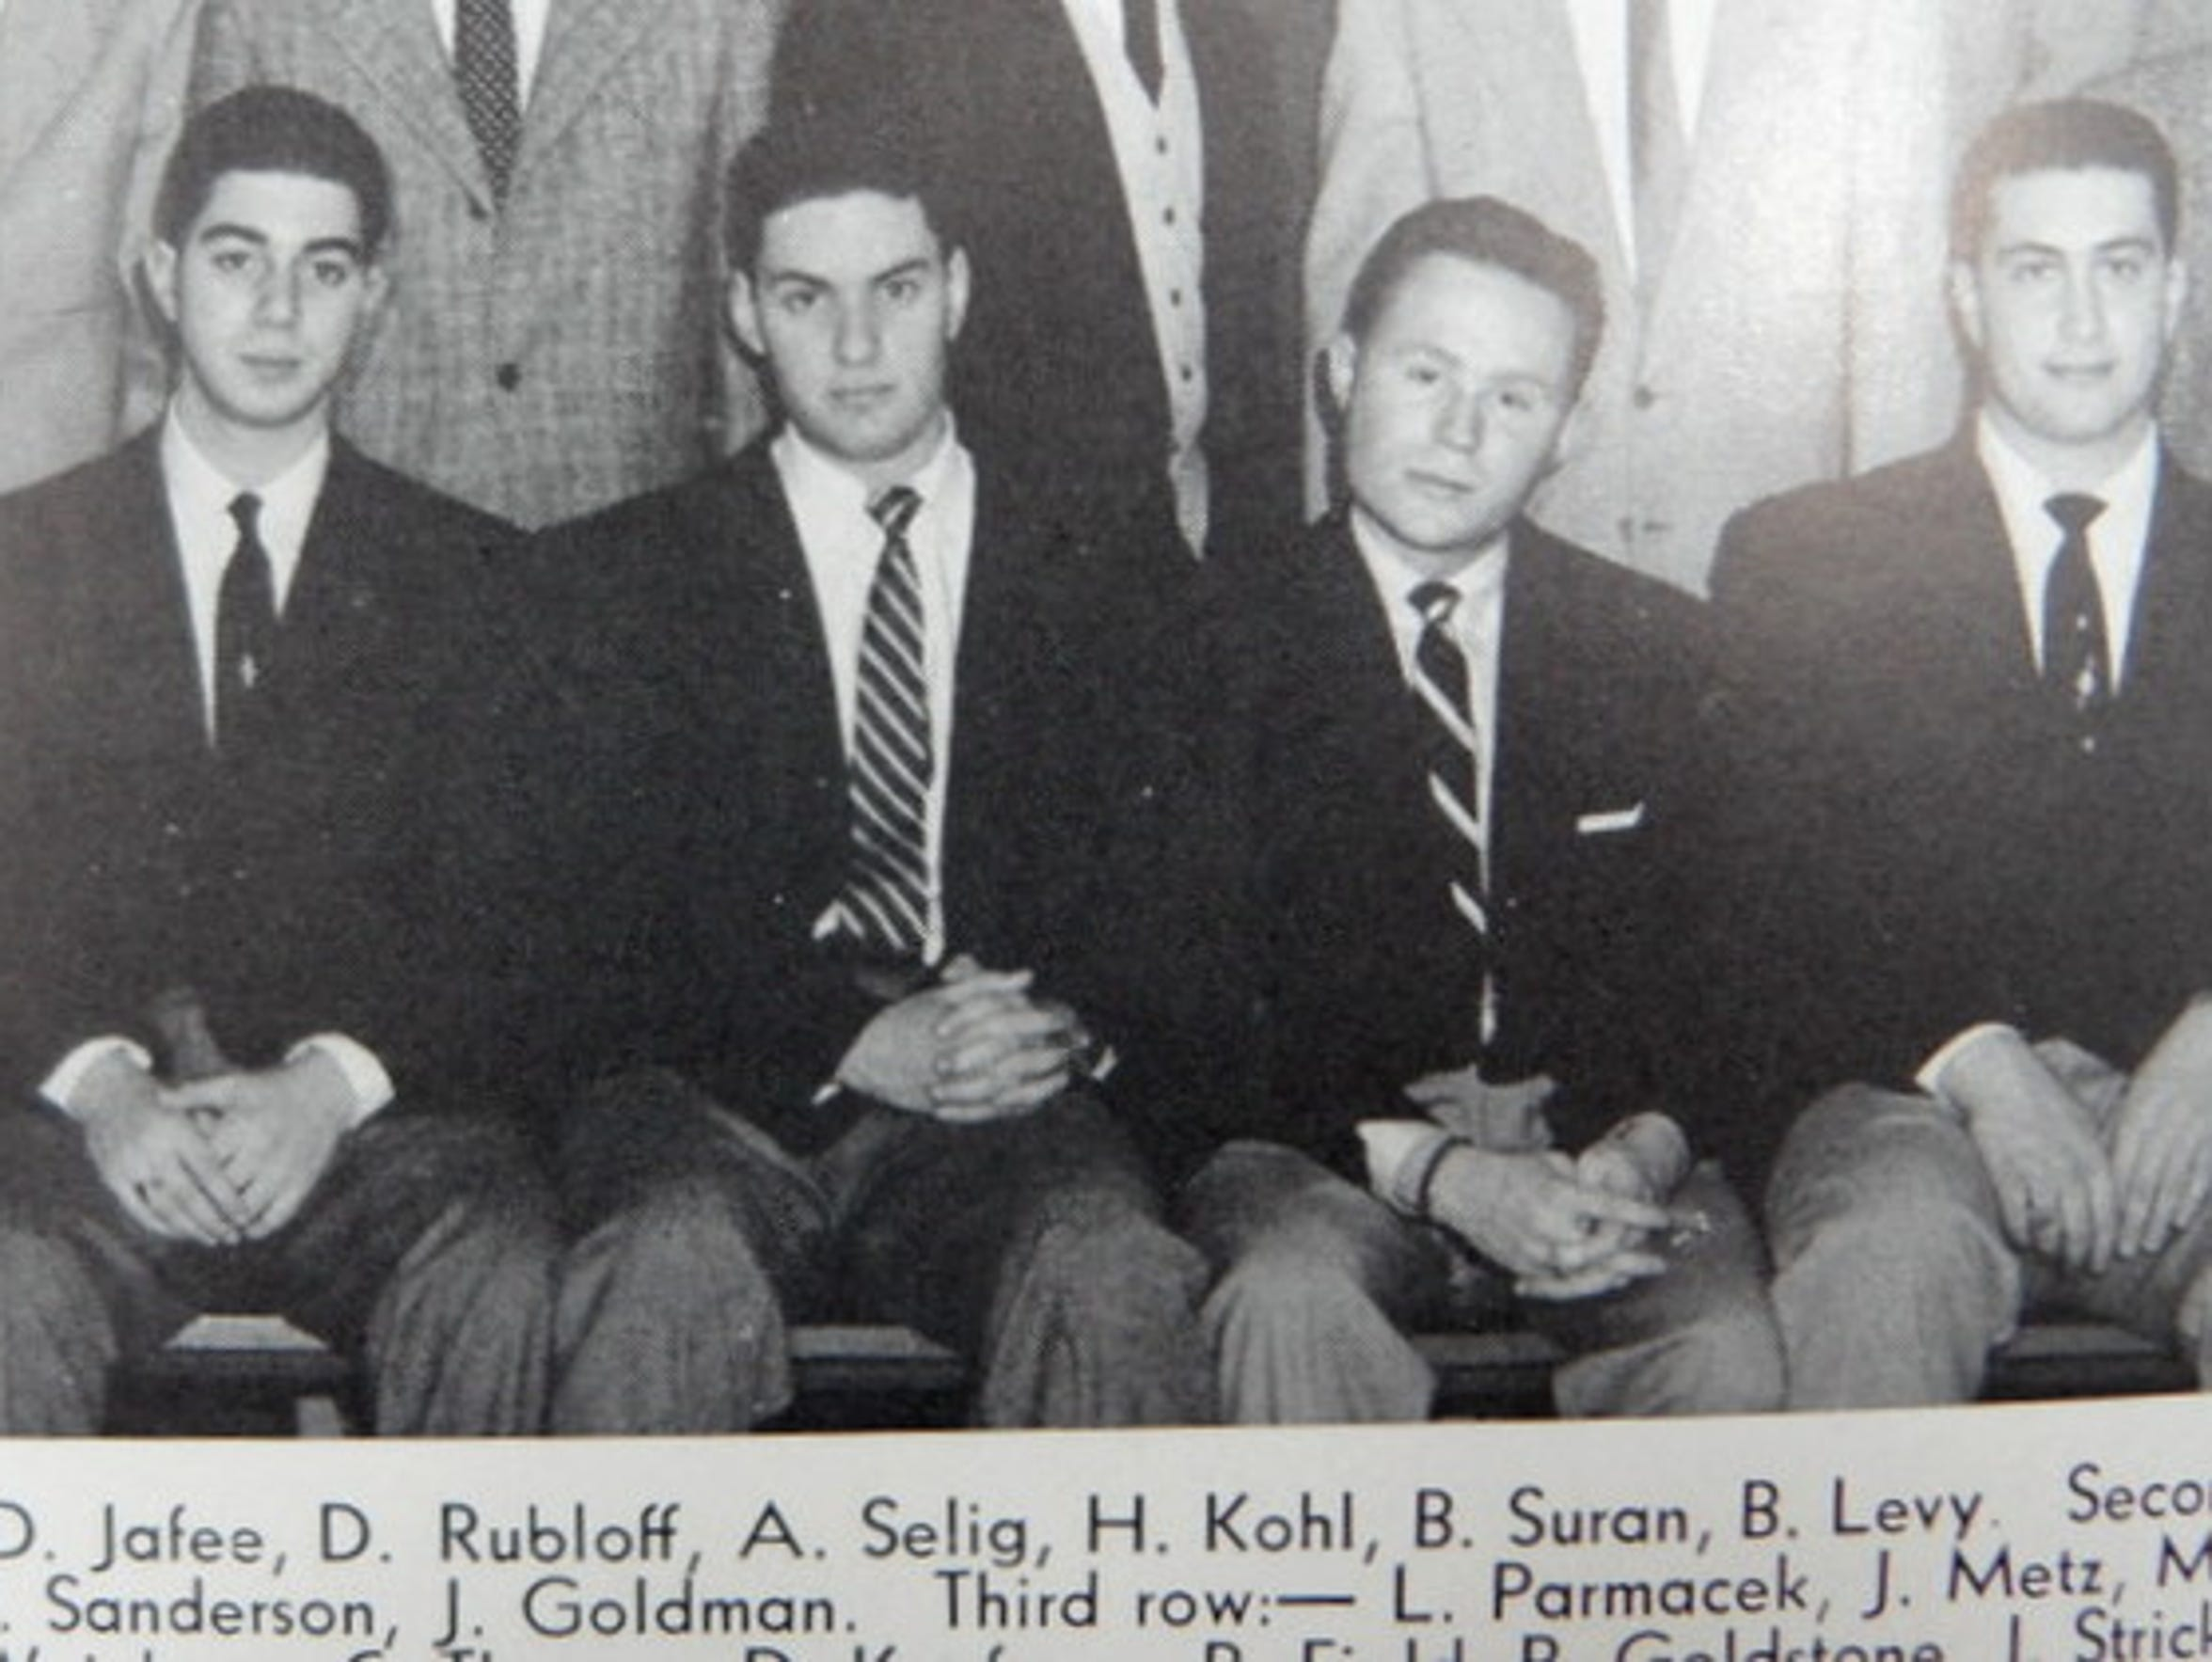 Bud Selig (second from left) and Herb Kohl (second